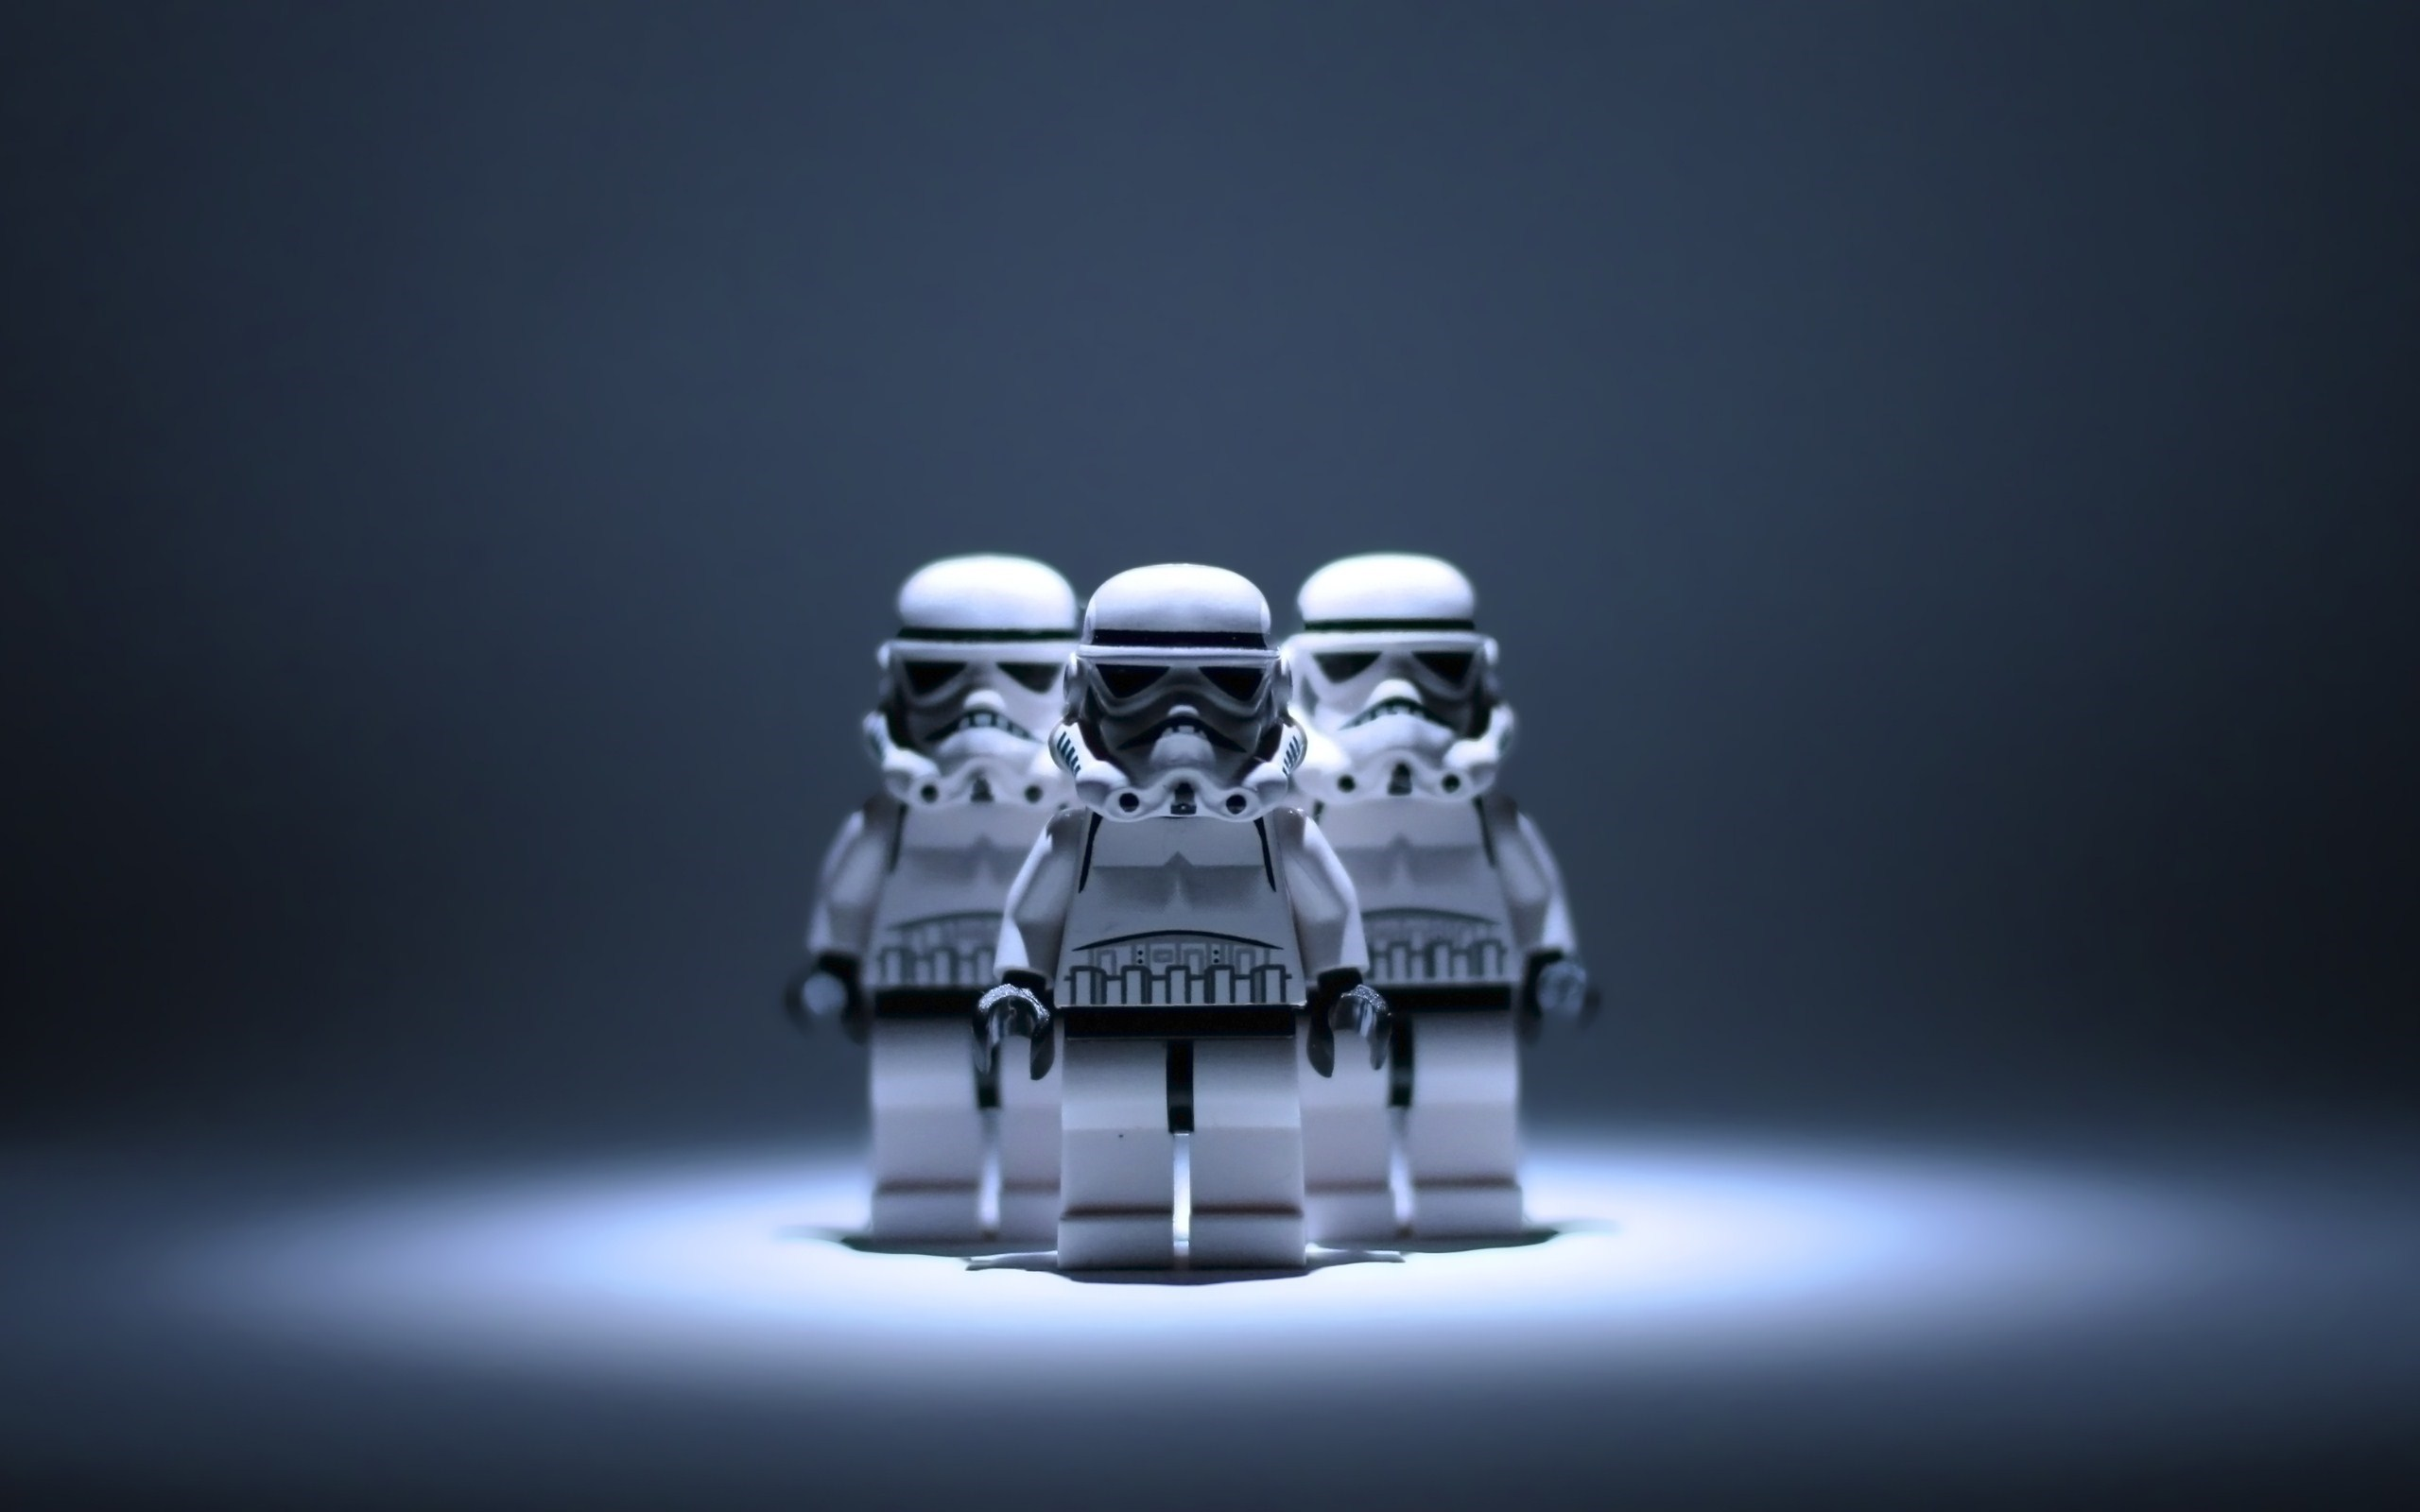 Lego Stormtroopers Toys Star Wars Spot Light HD Wallpaper